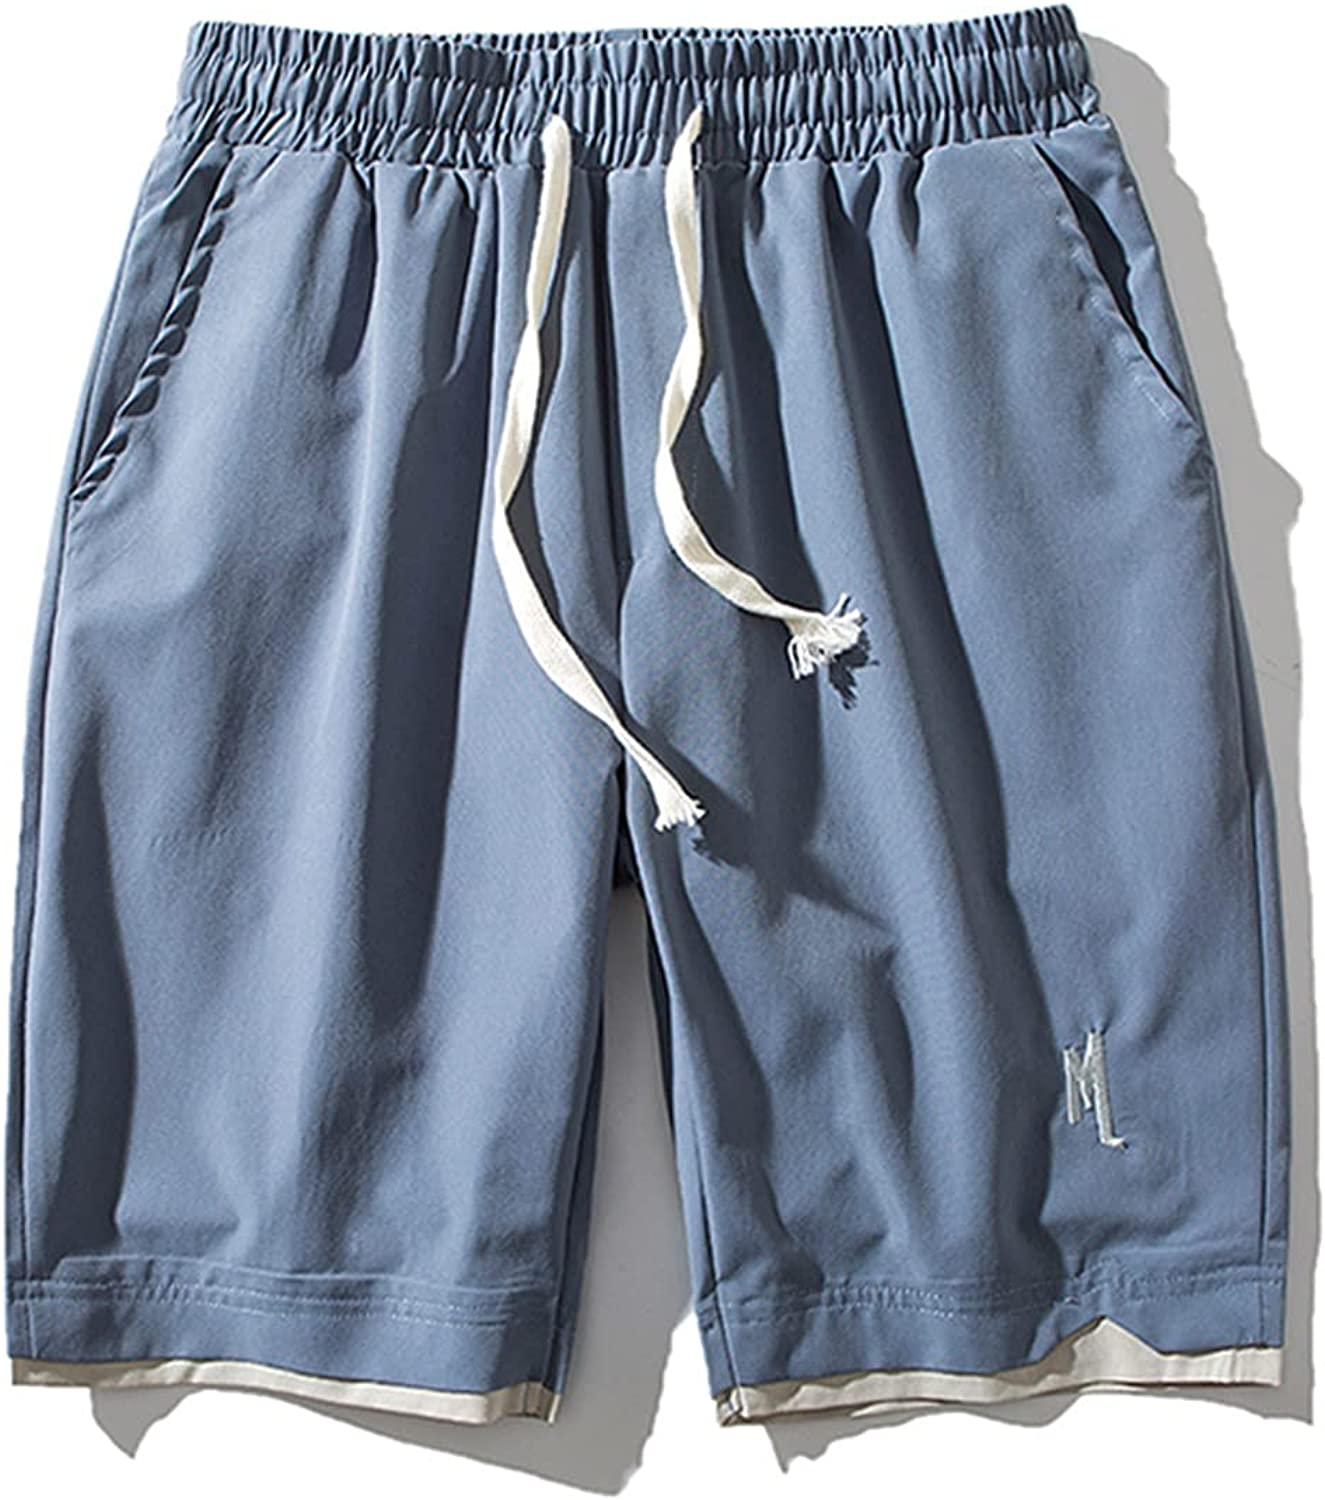 ZCAITIANYA Men's Shorts Beach Pants Casual Solid Color Summer Workout Drawstring Fit Elastic Waist with Pockets